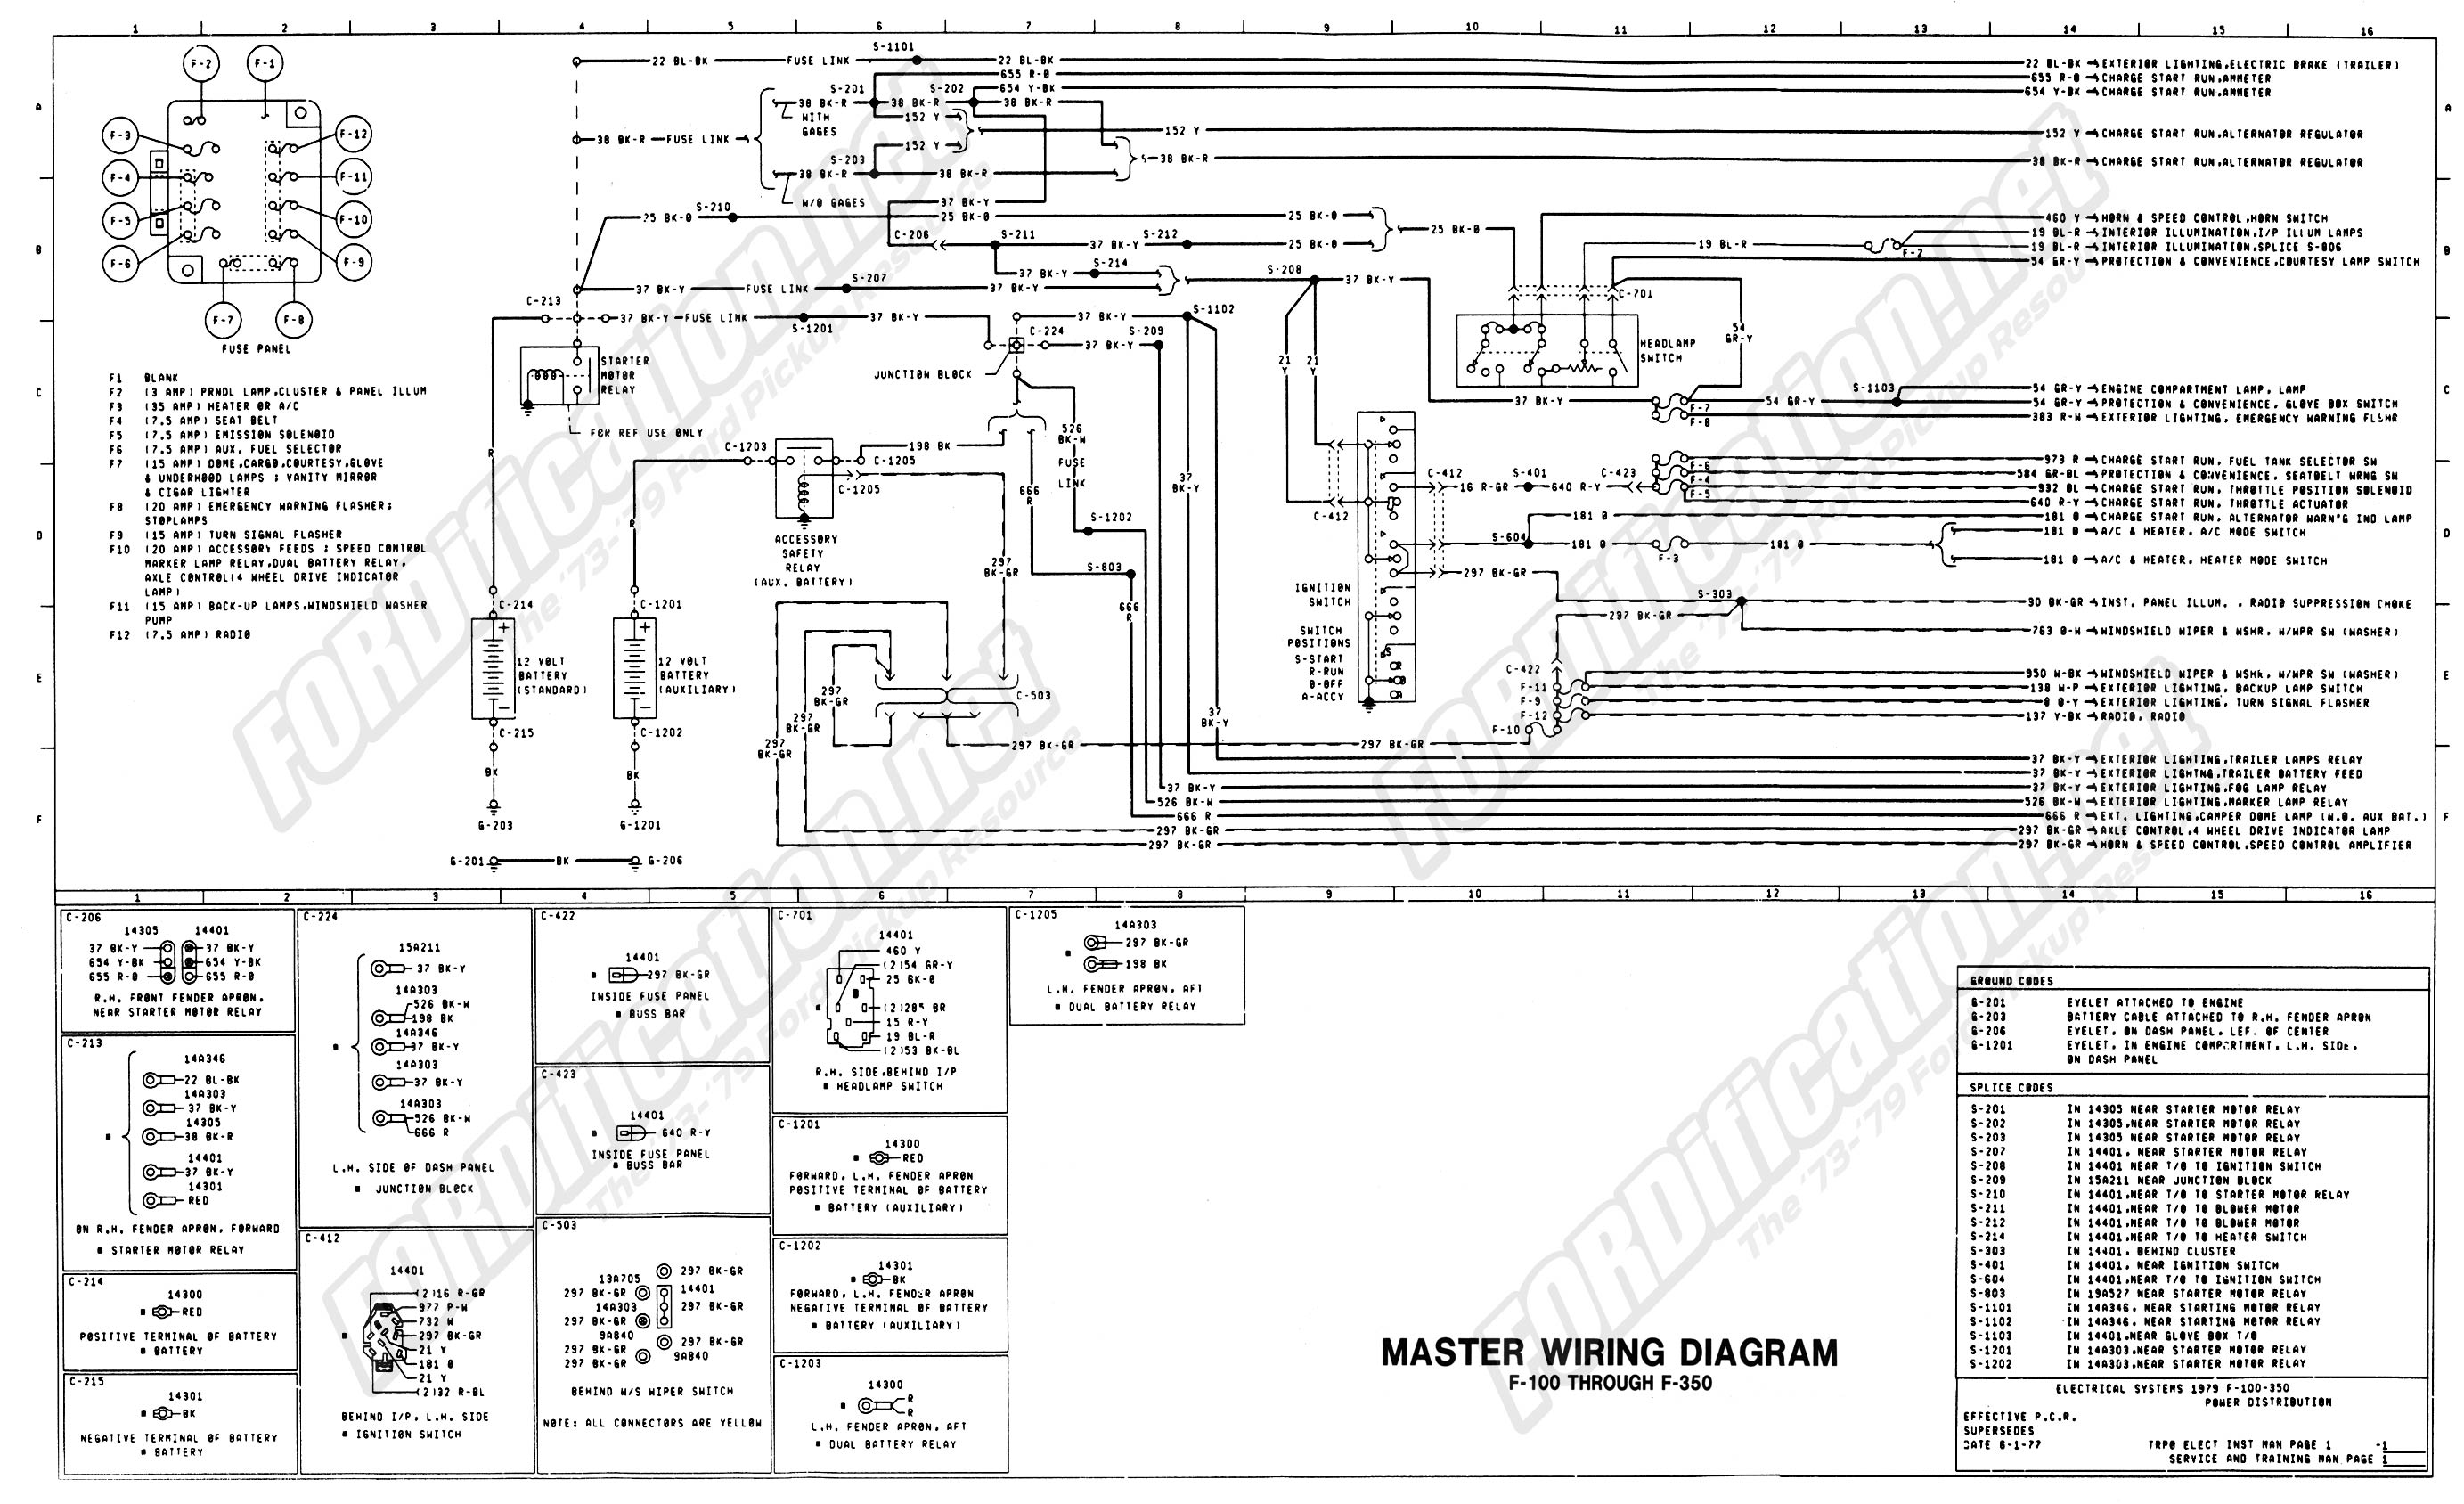 wiring_79master_1of9 1973 1979 ford truck wiring diagrams & schematics fordification net  at gsmx.co